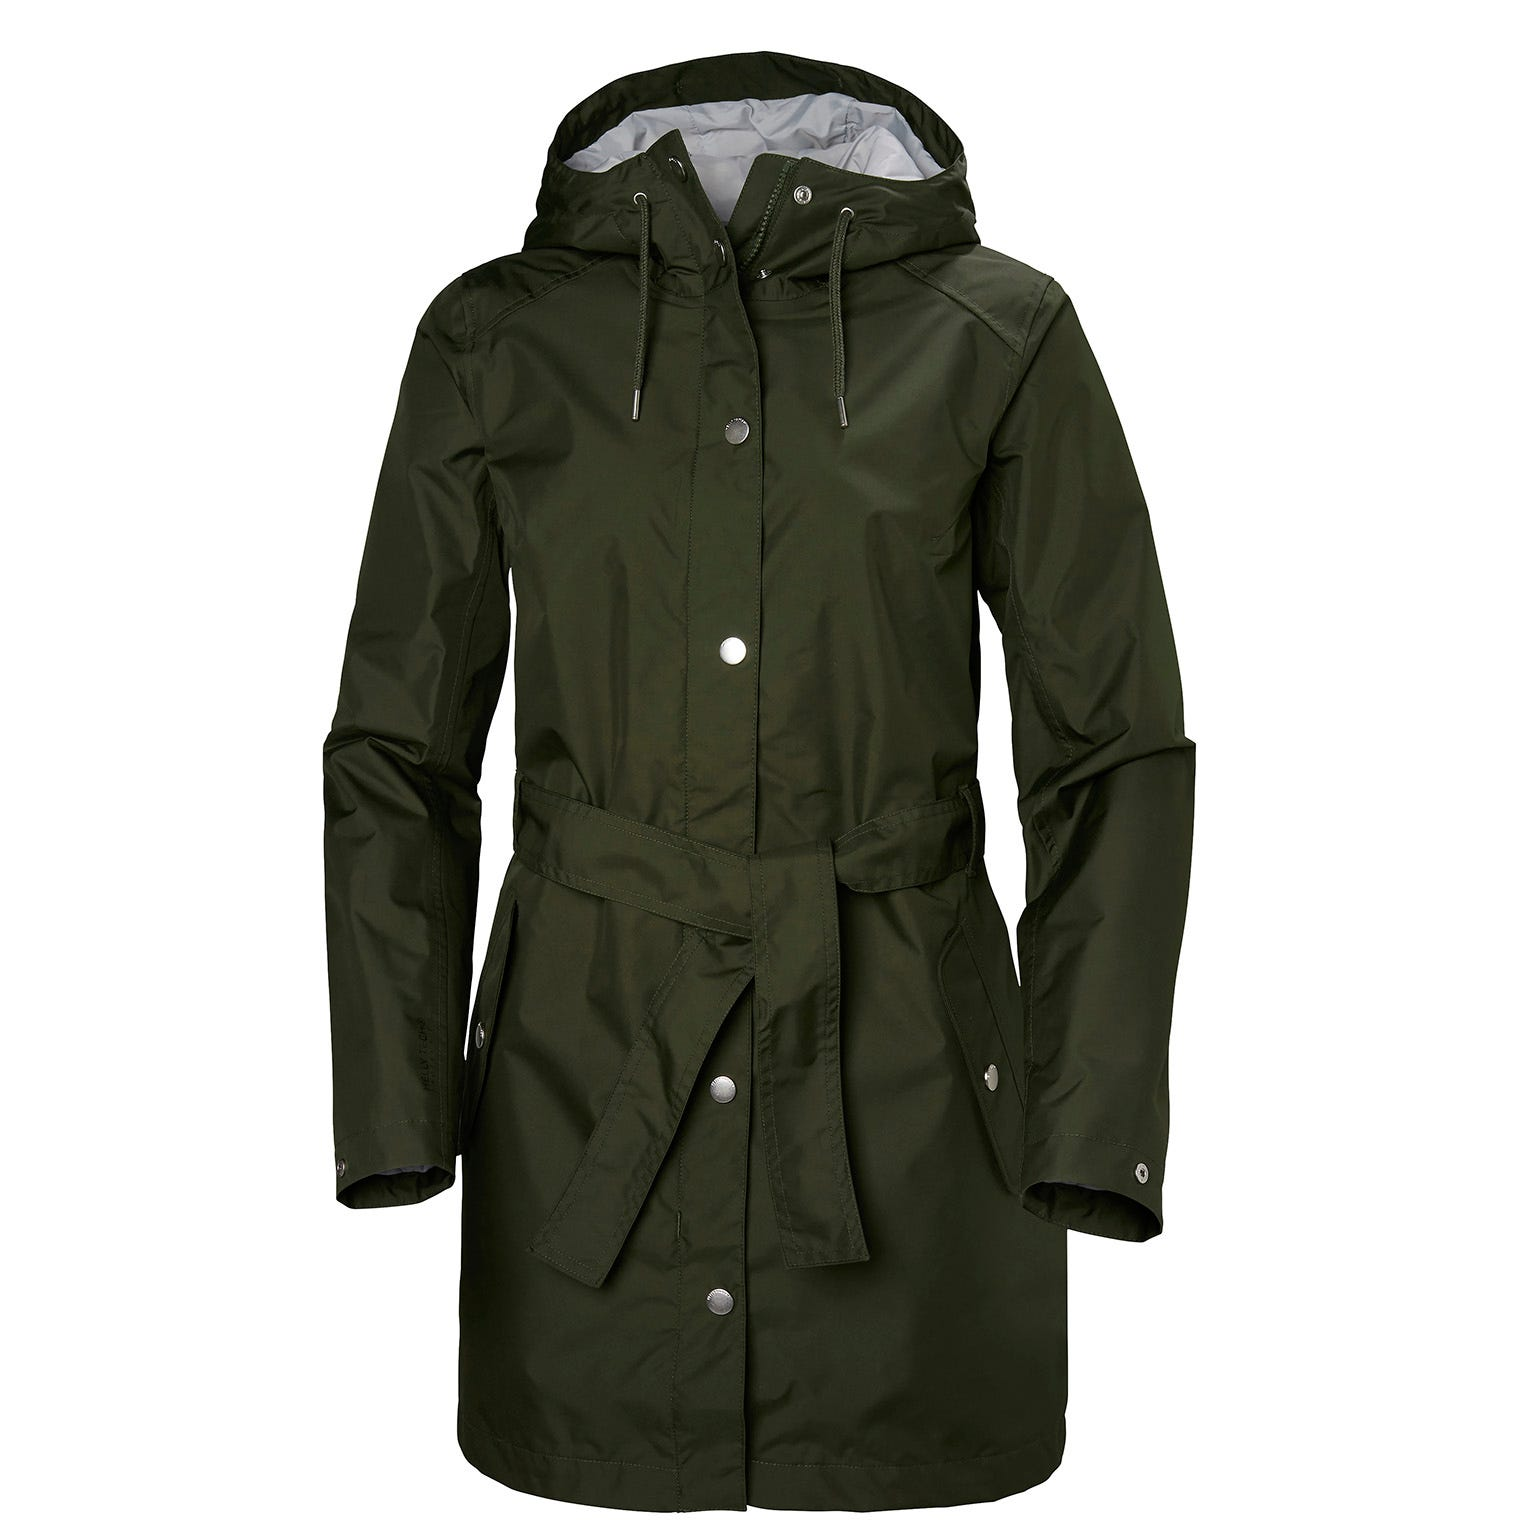 Womens Lyness Ii Retro 3/4 Length Rain Coat | Helly Hansen Womens Jacket Green XL